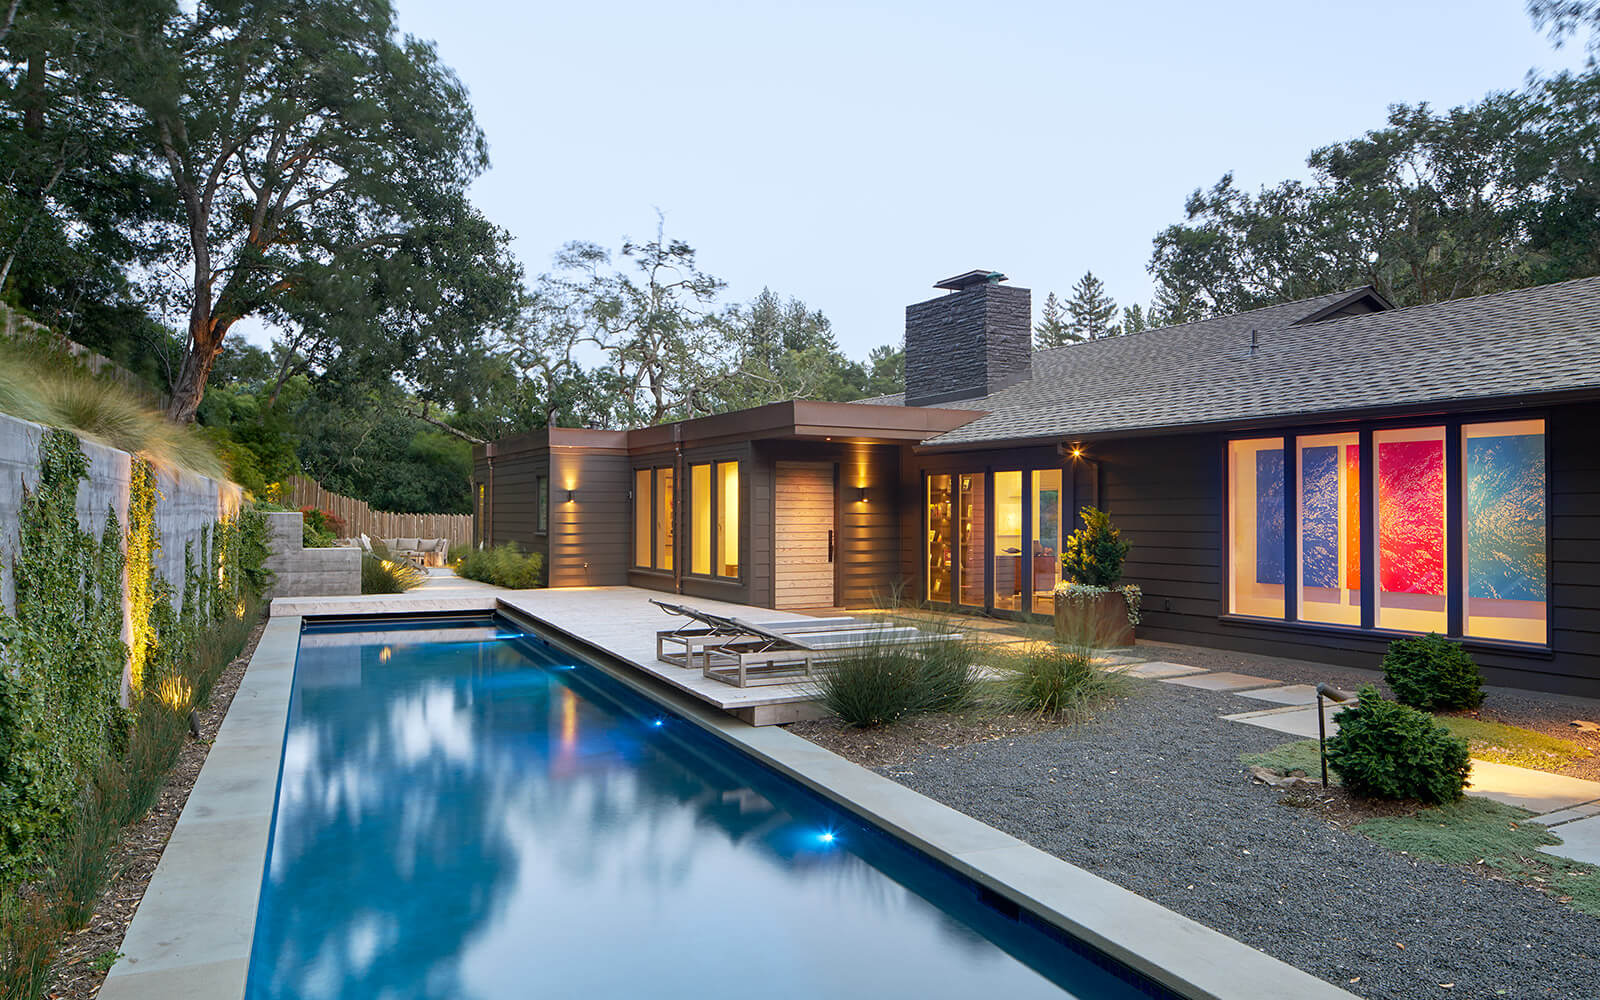 studio vara residential Kentfield pool backyard landscape